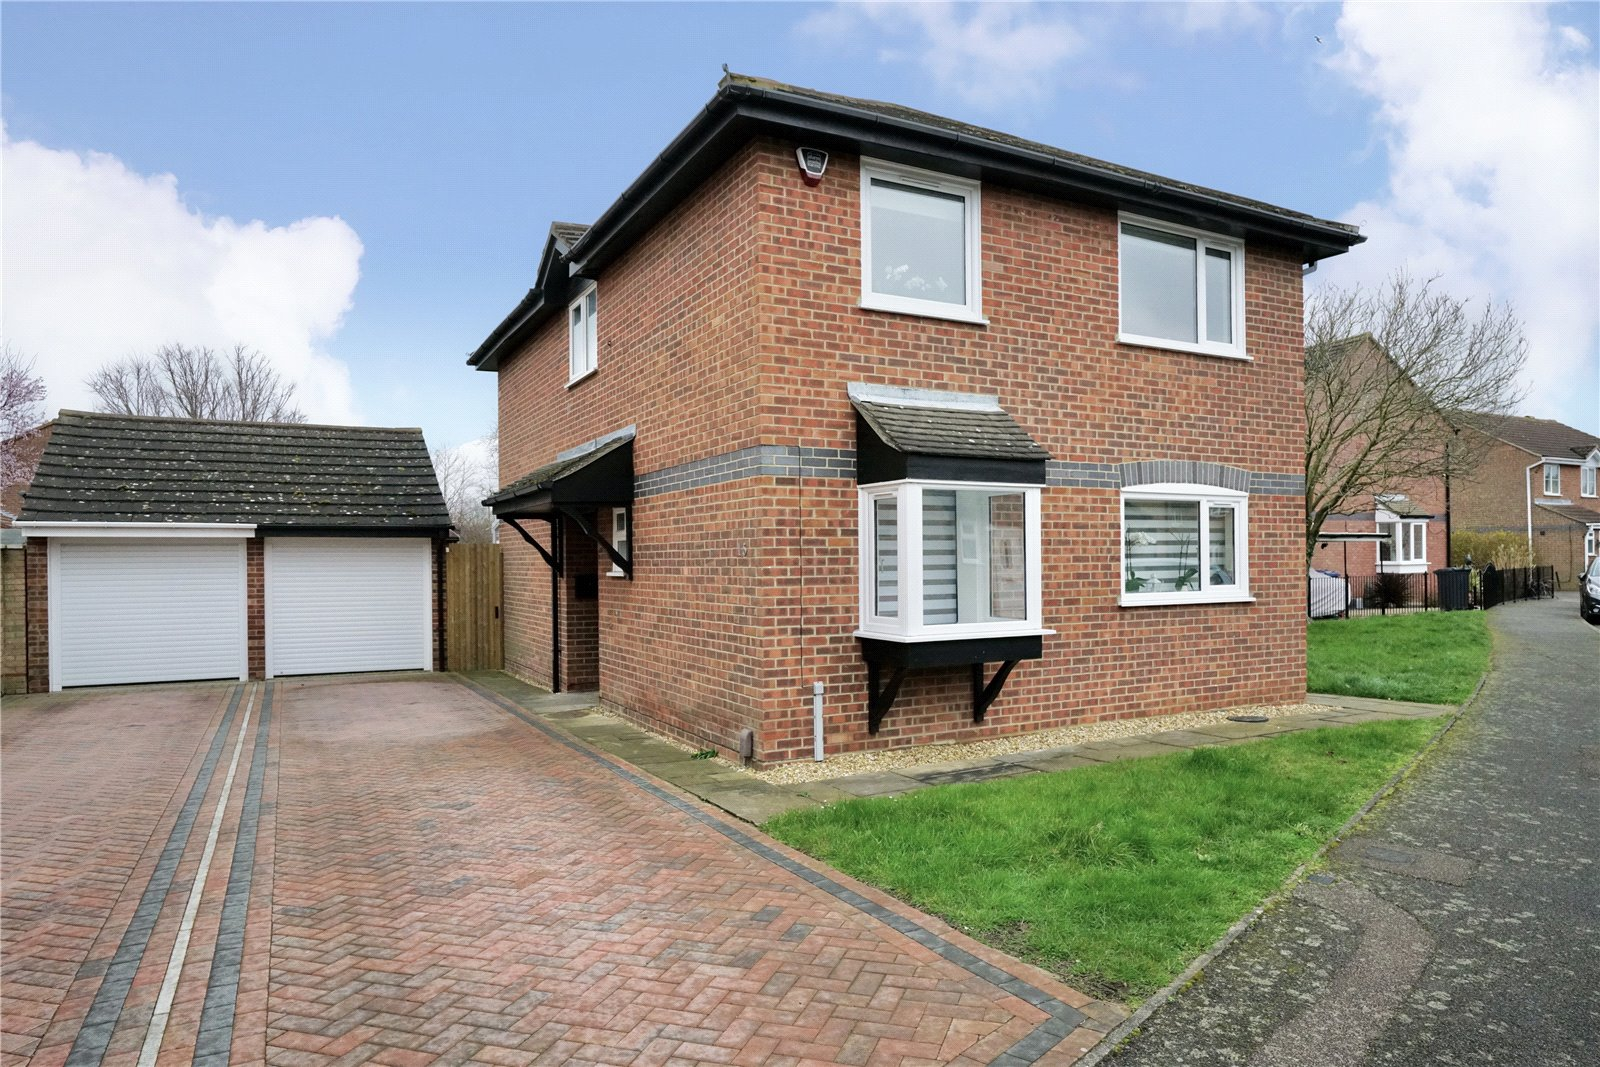 4 bed house for sale in Bodiam Way, Eynesbury, PE19